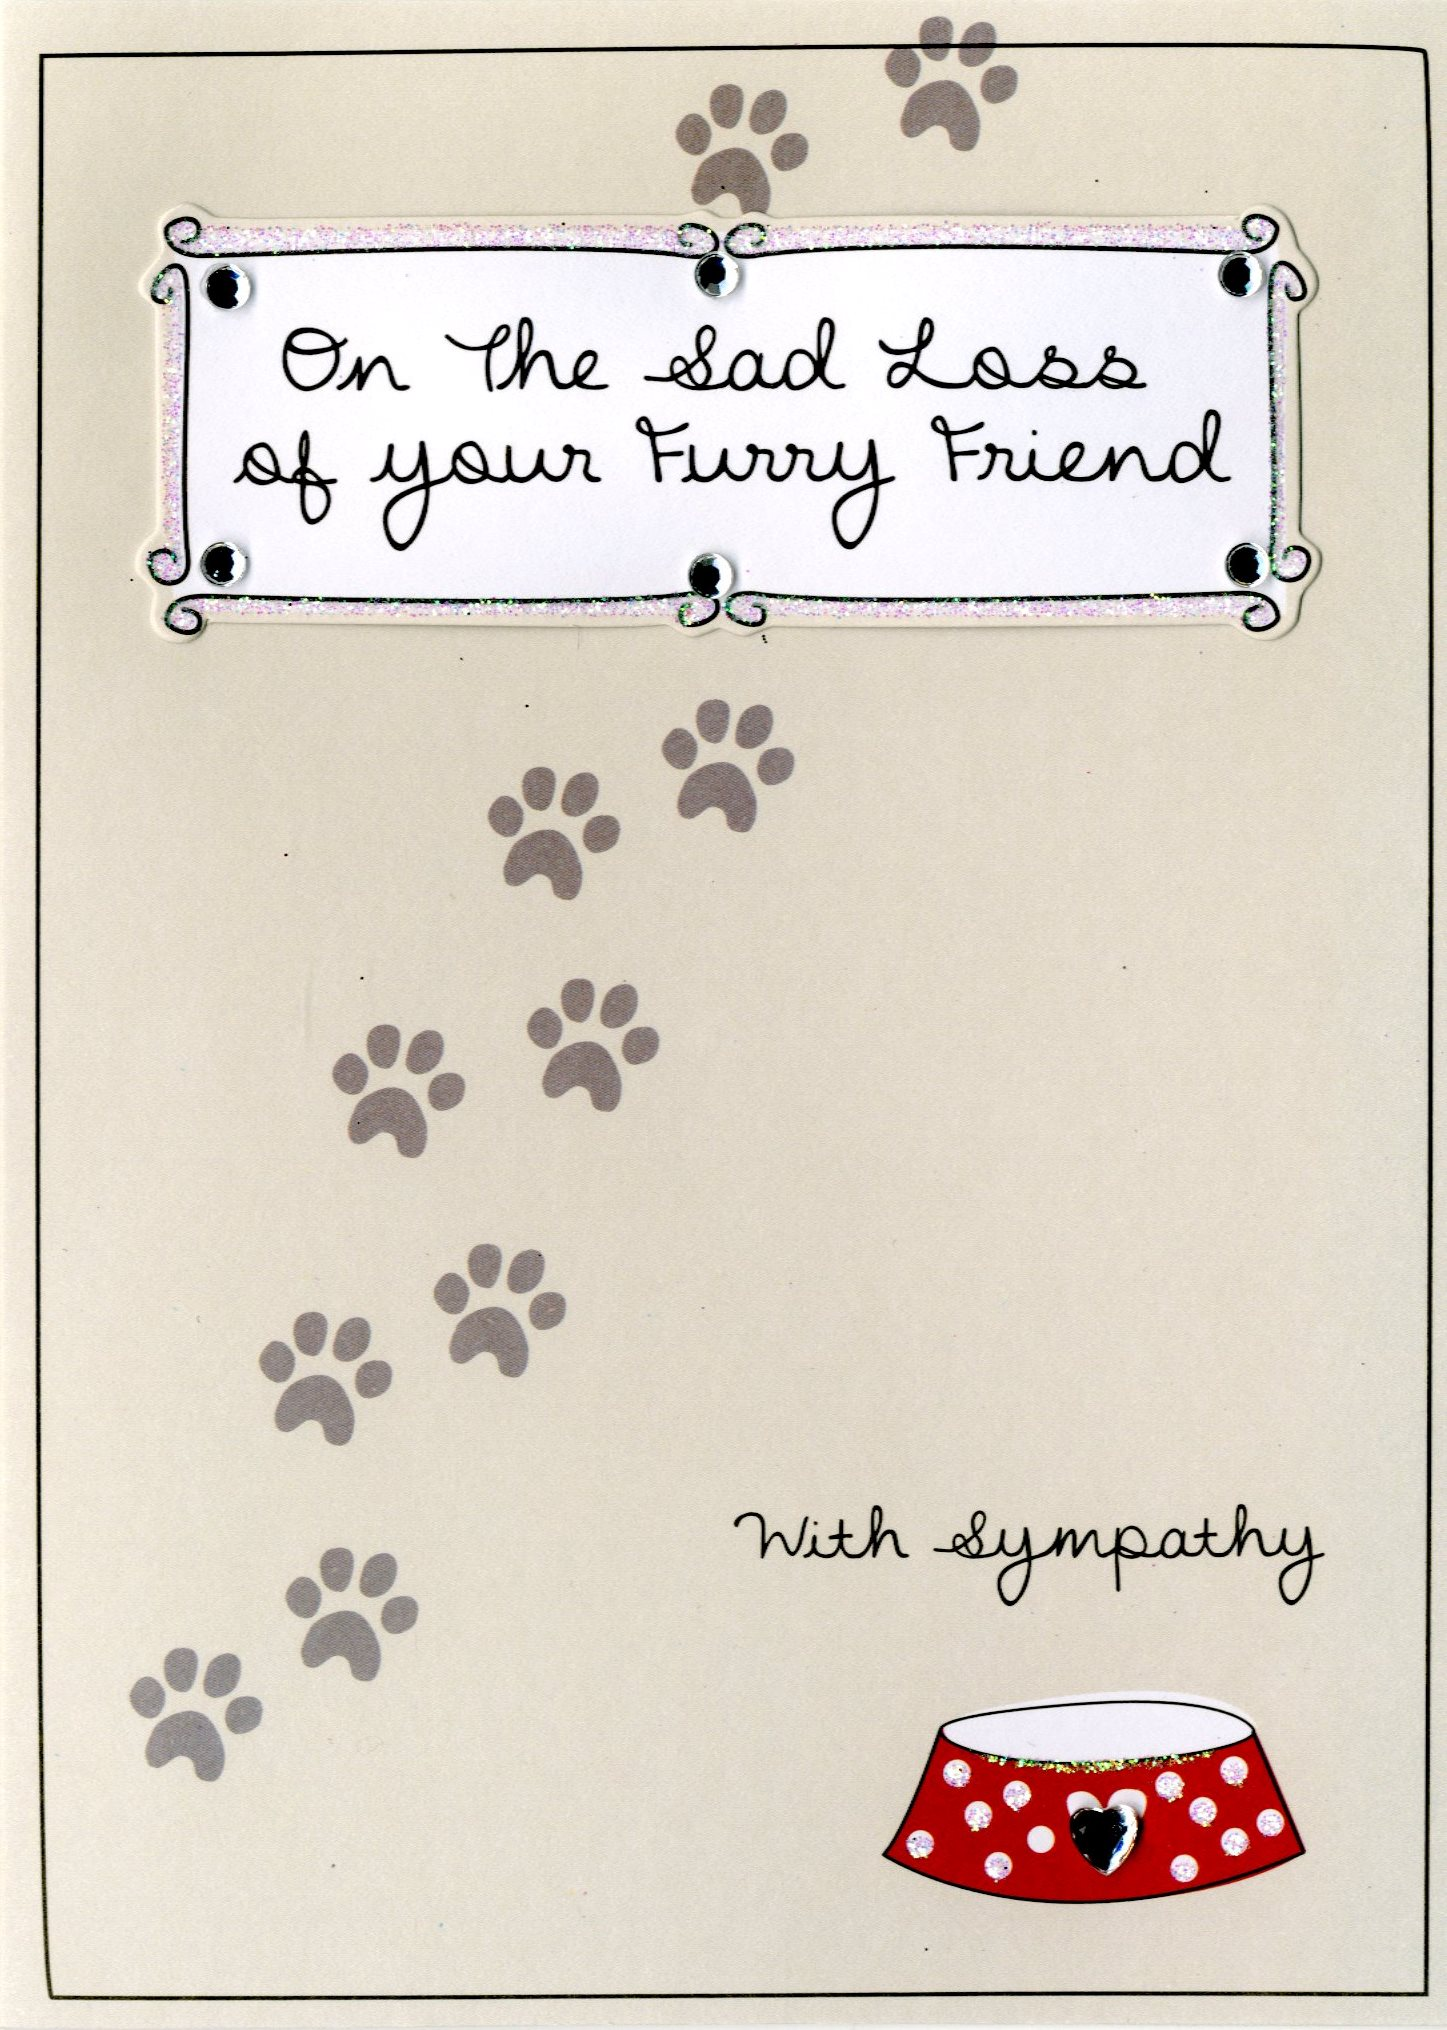 Sad loss of your furry friend pet sympathy greeting card cards sad loss of your furry friend pet sympathy greeting card m4hsunfo